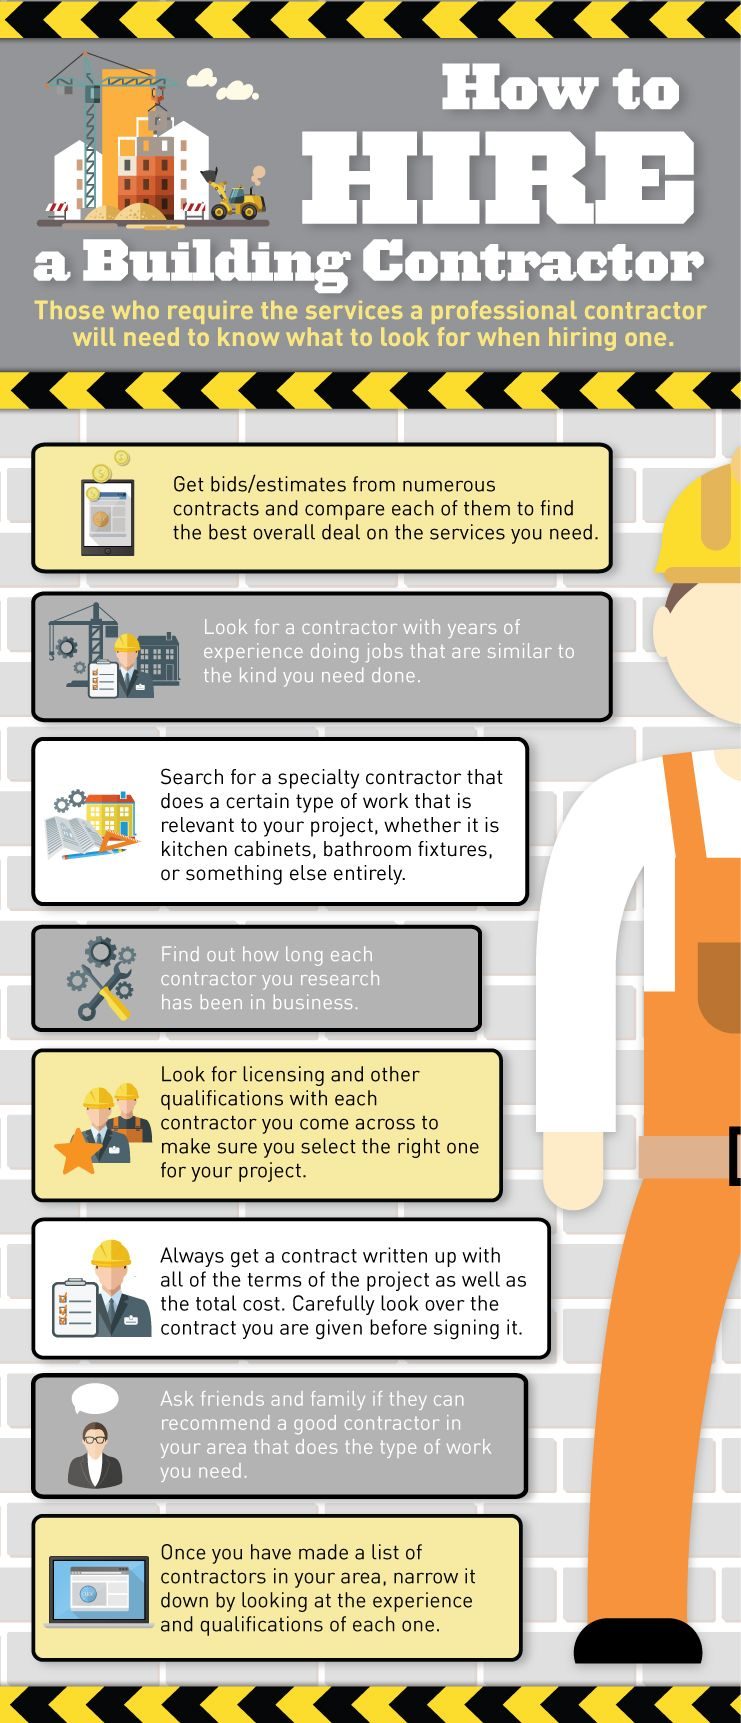 Those who need to hire a professional building contractor